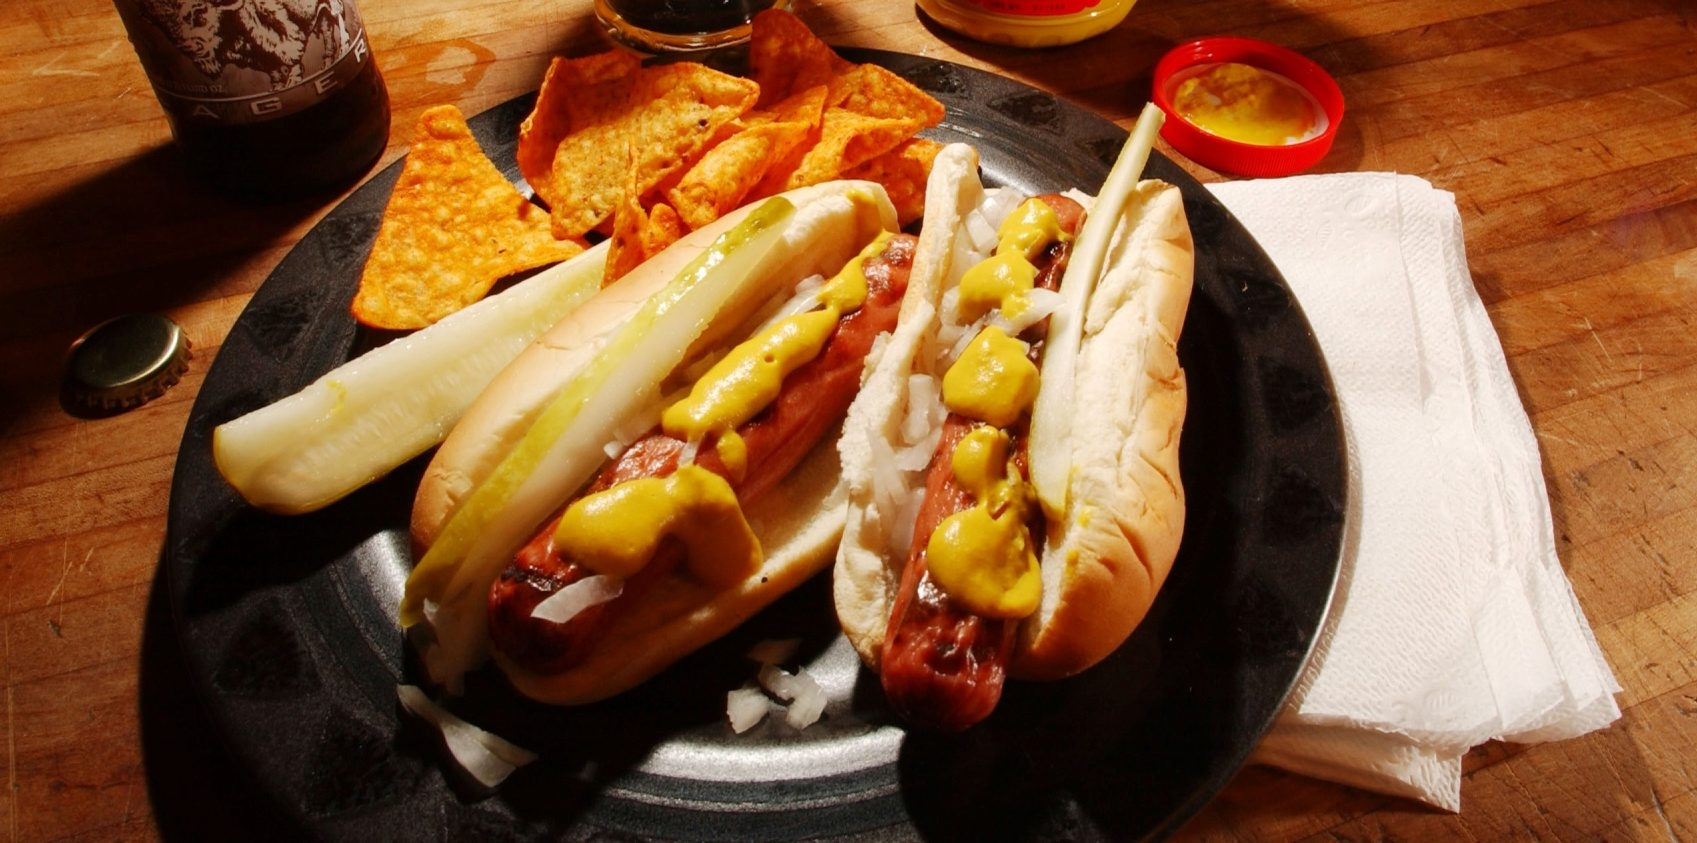 Sahlen's is test-marketing its products at 60 Harris Teeter grocery stores in the Charlotte-Mecklenburg County area.